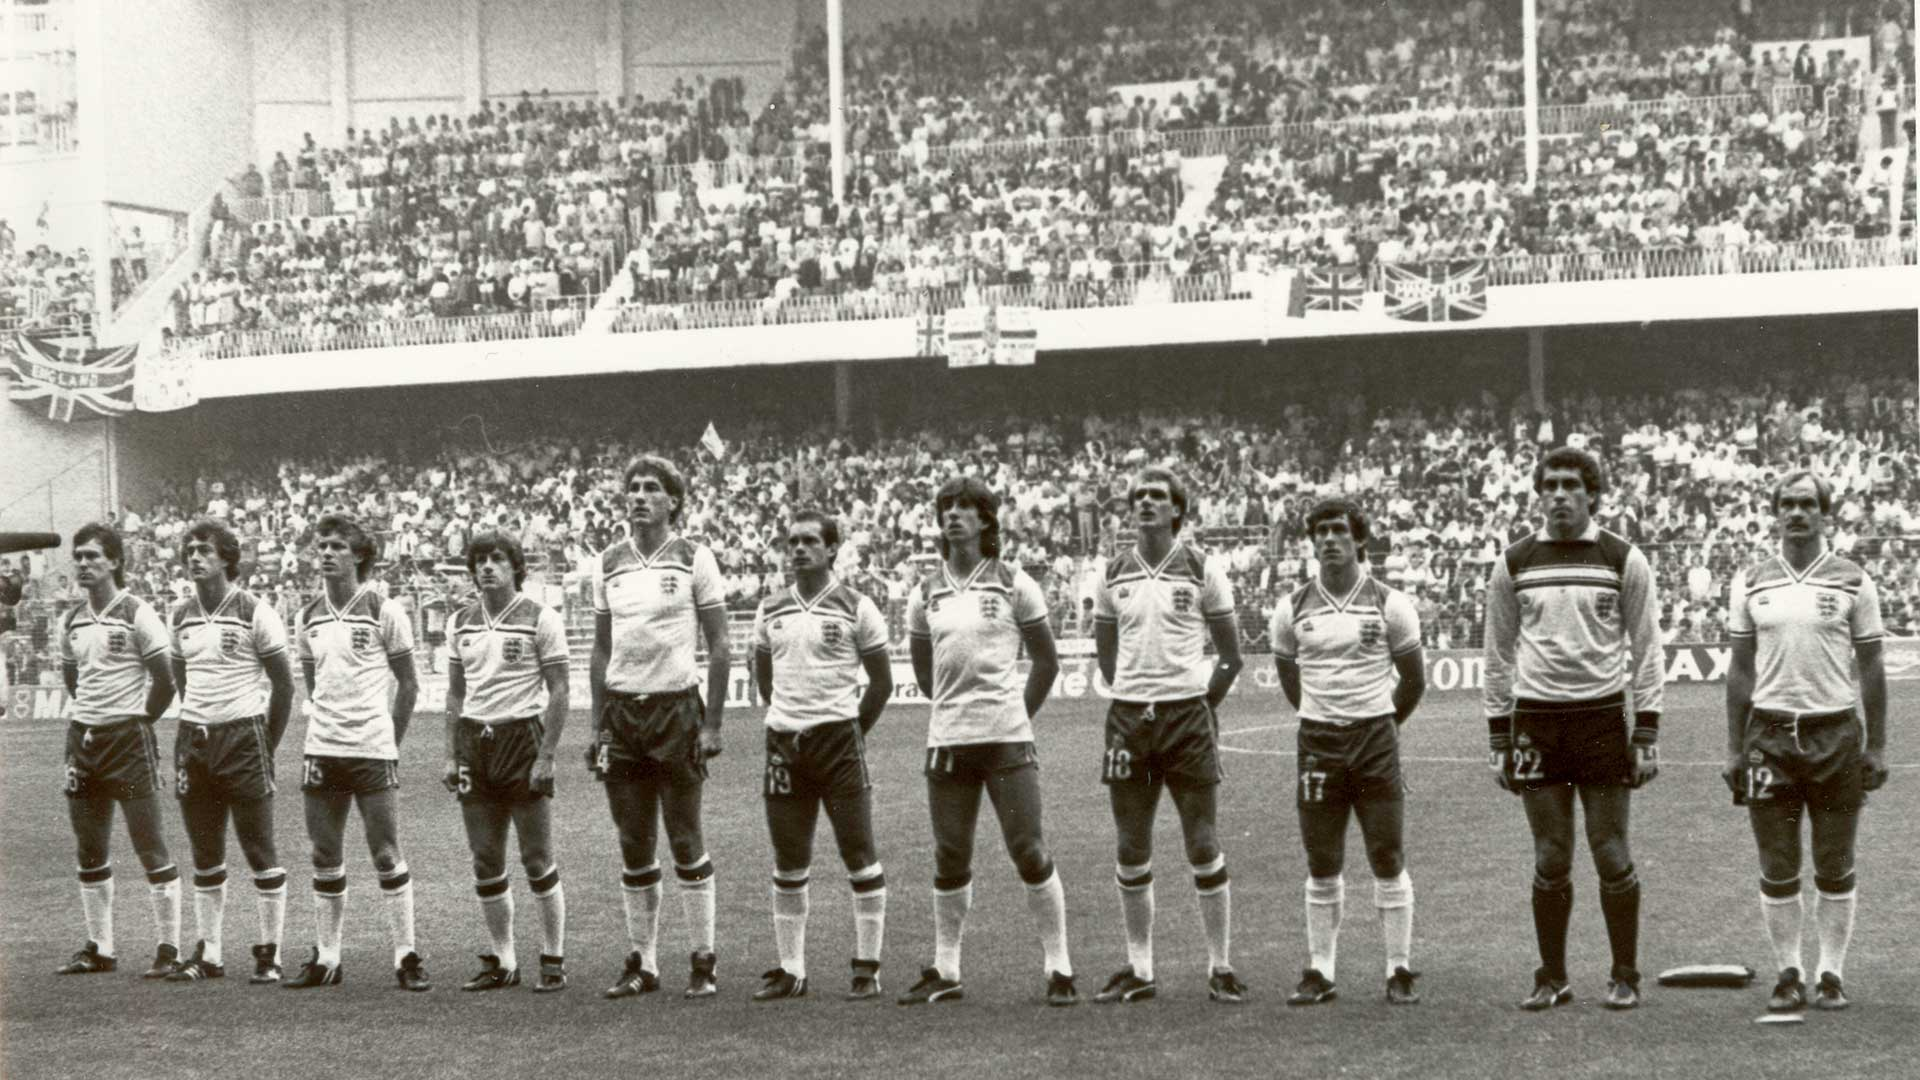 38 years since England – France match in San Mamés